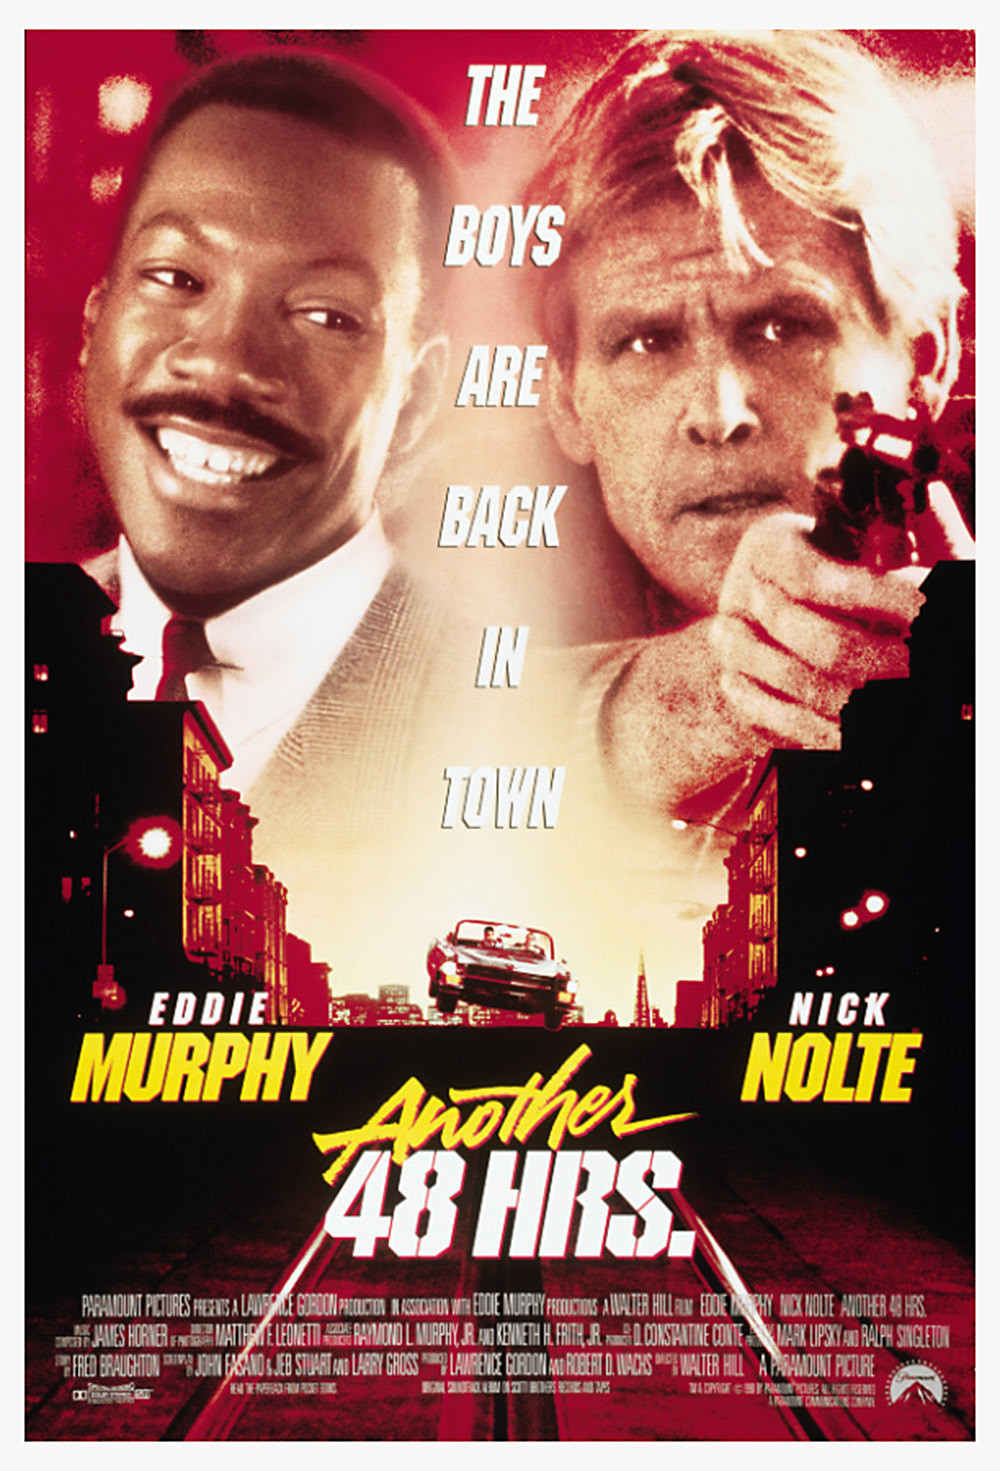 We Hate Movies: Episode 256 - Another 48 Hrs.